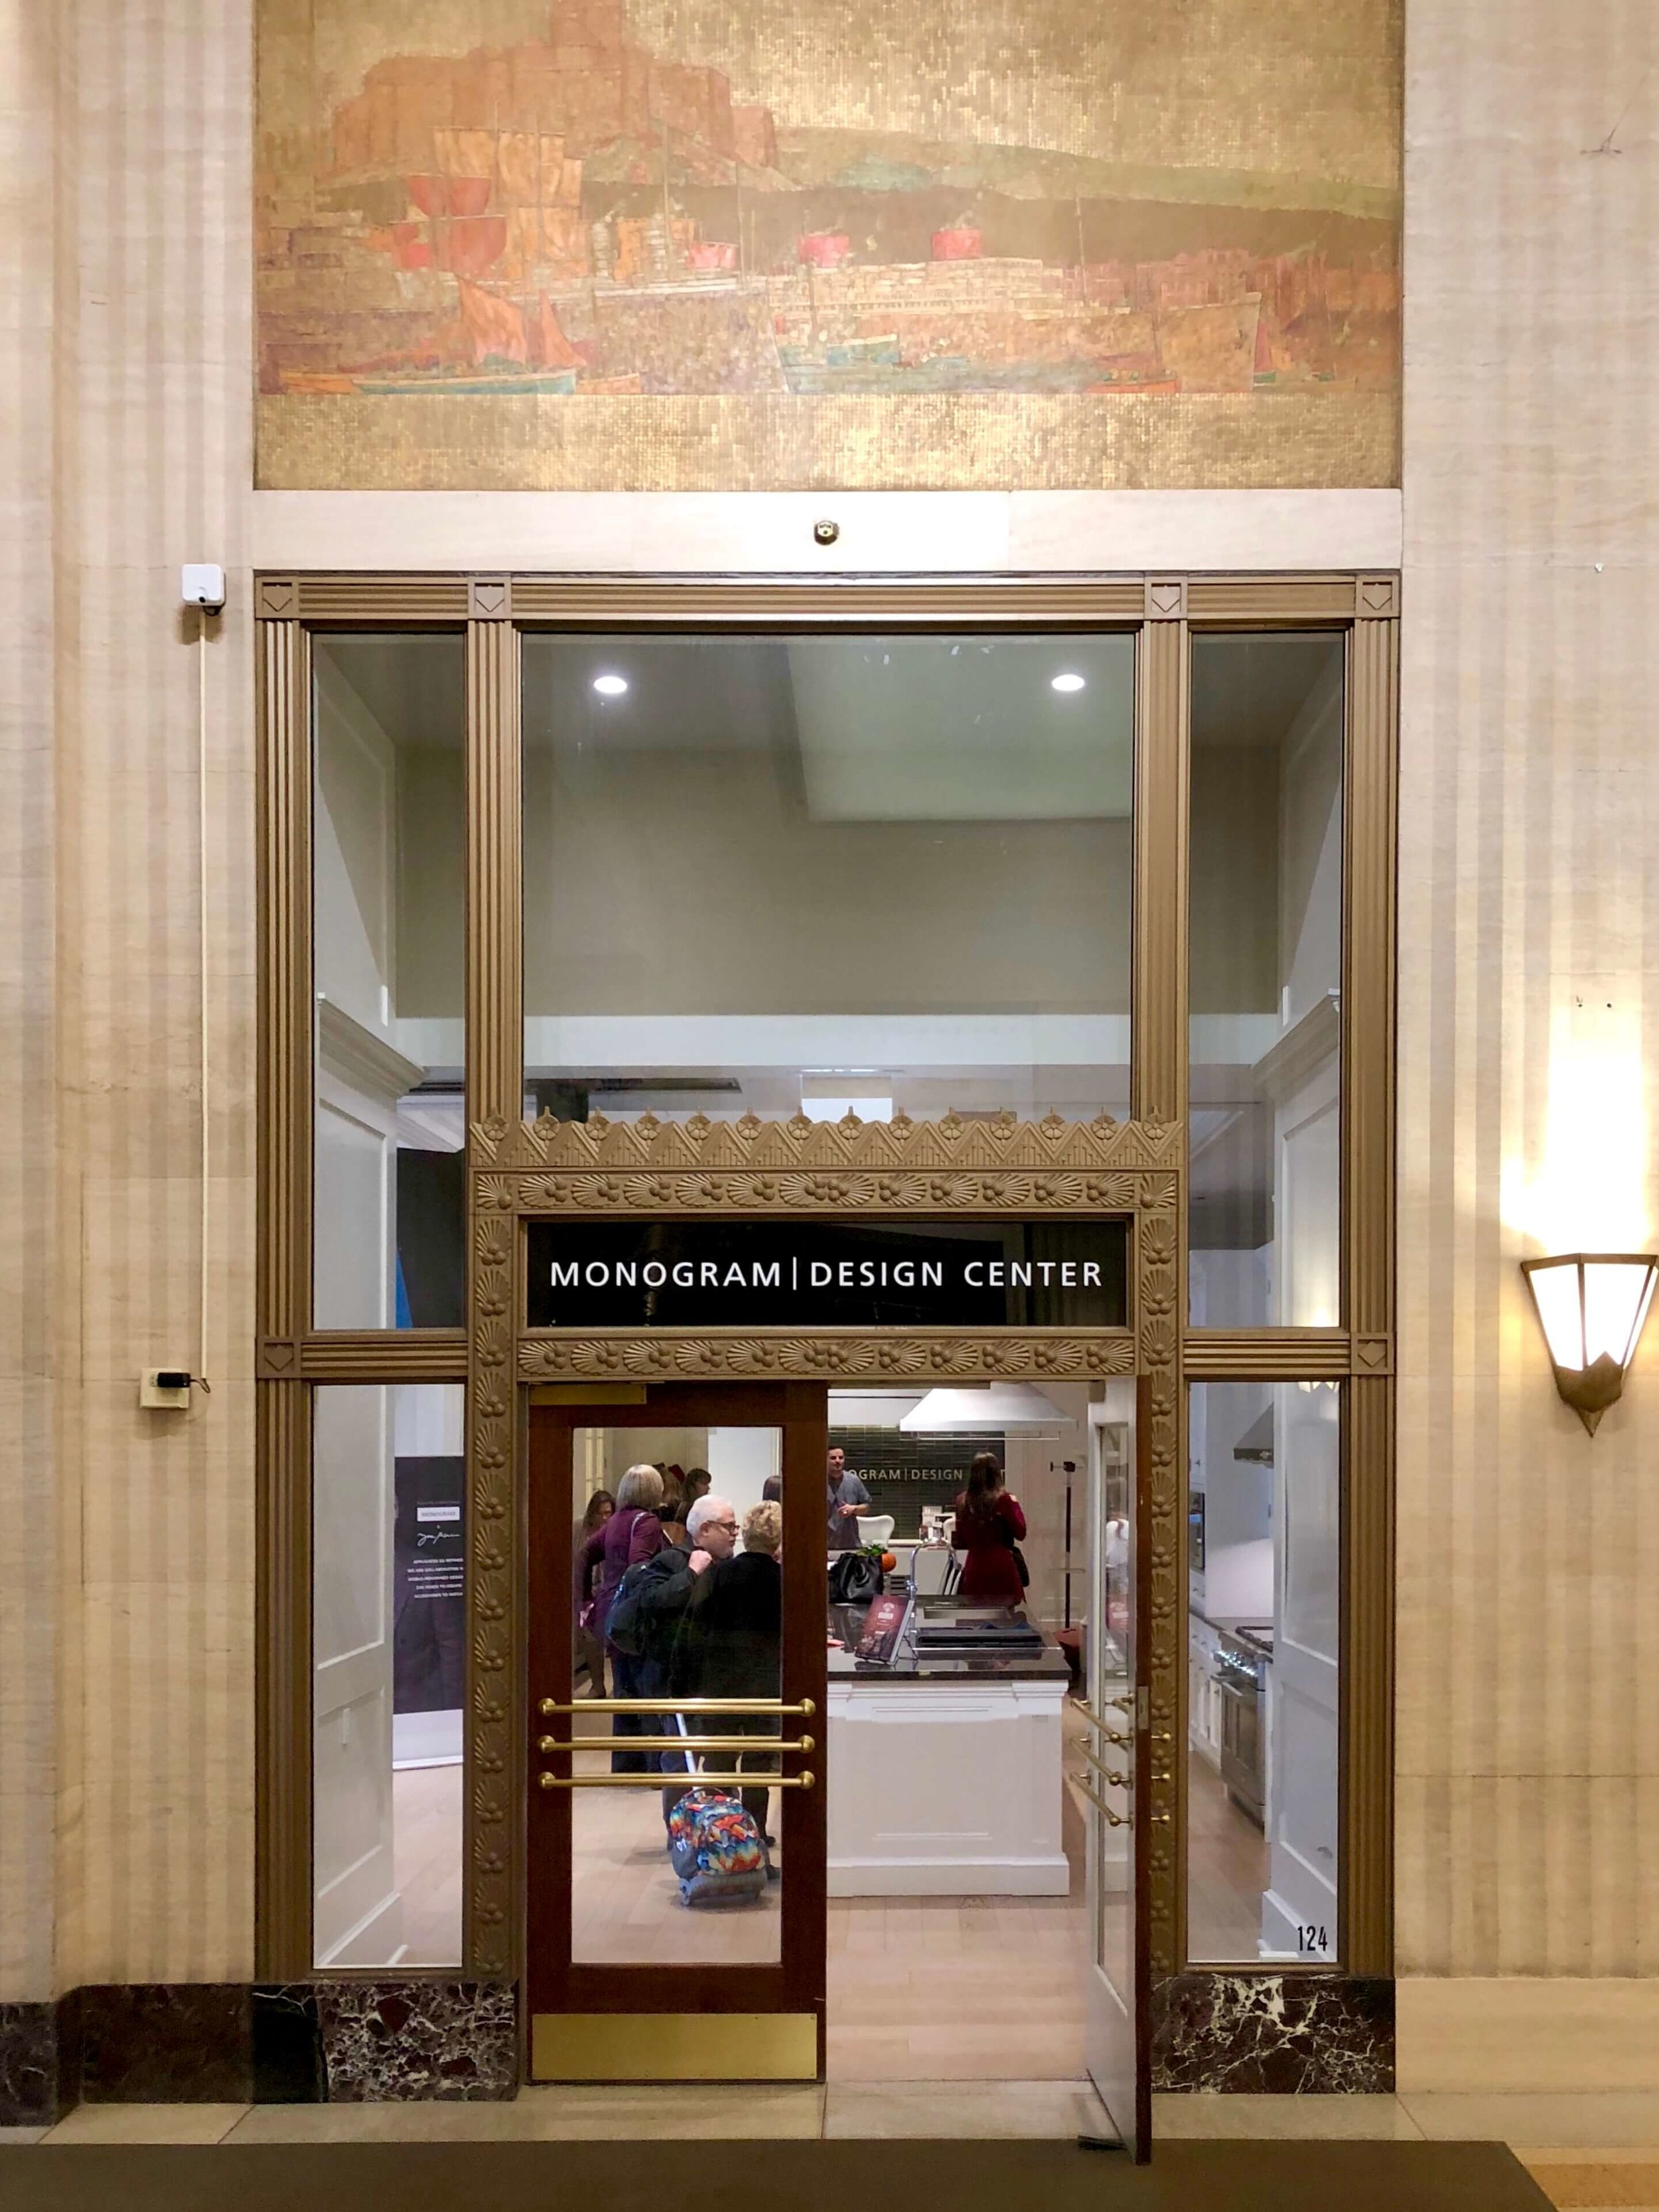 Monogram Design Center showroom in The Merchandise Mart, Chicago. Thanks to Monogram for this lovely trip and experience!